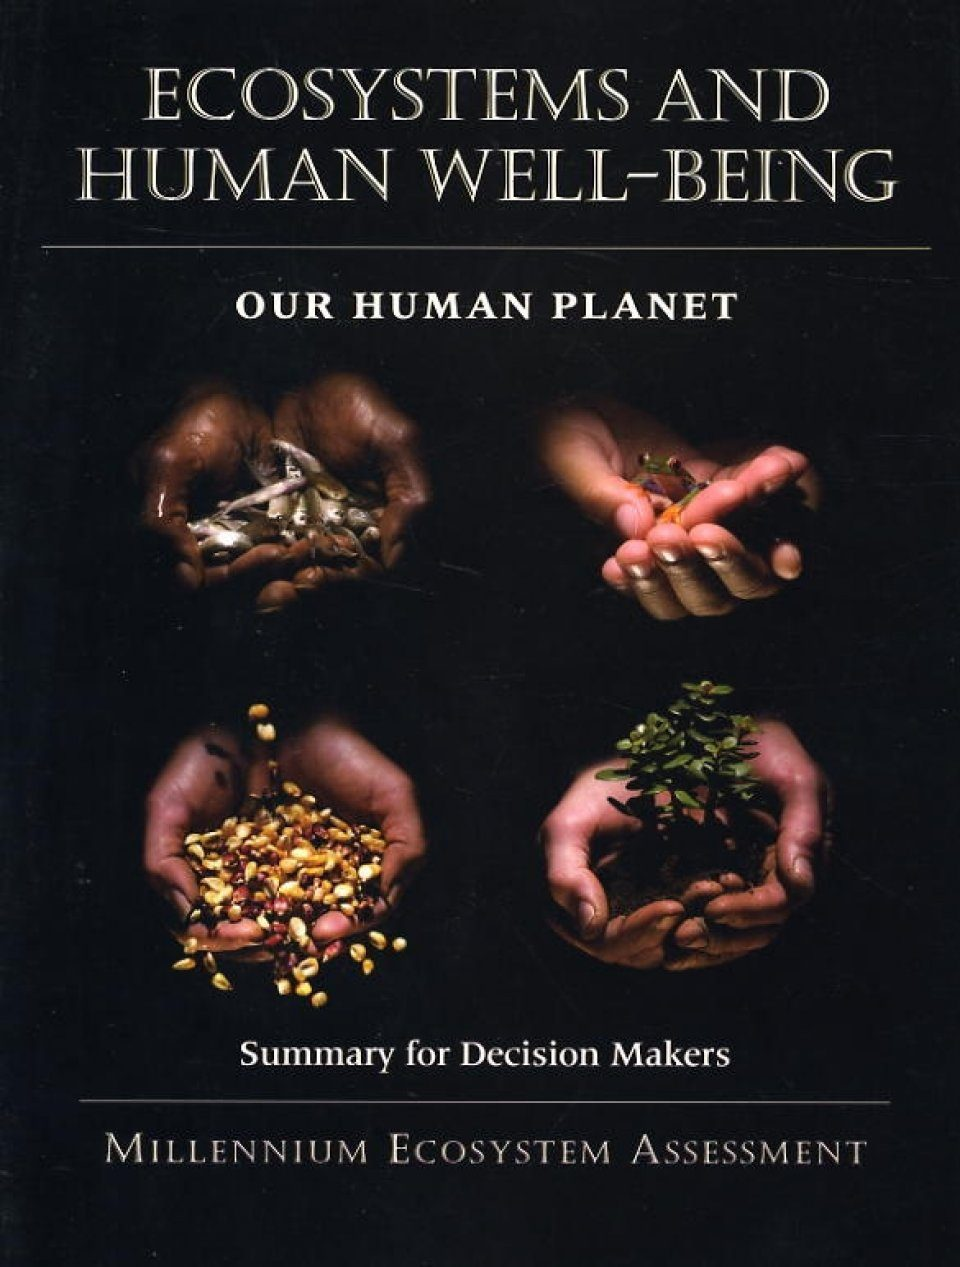 Ecosystems and Human Well-Being: Our Human Planet, Volume 5